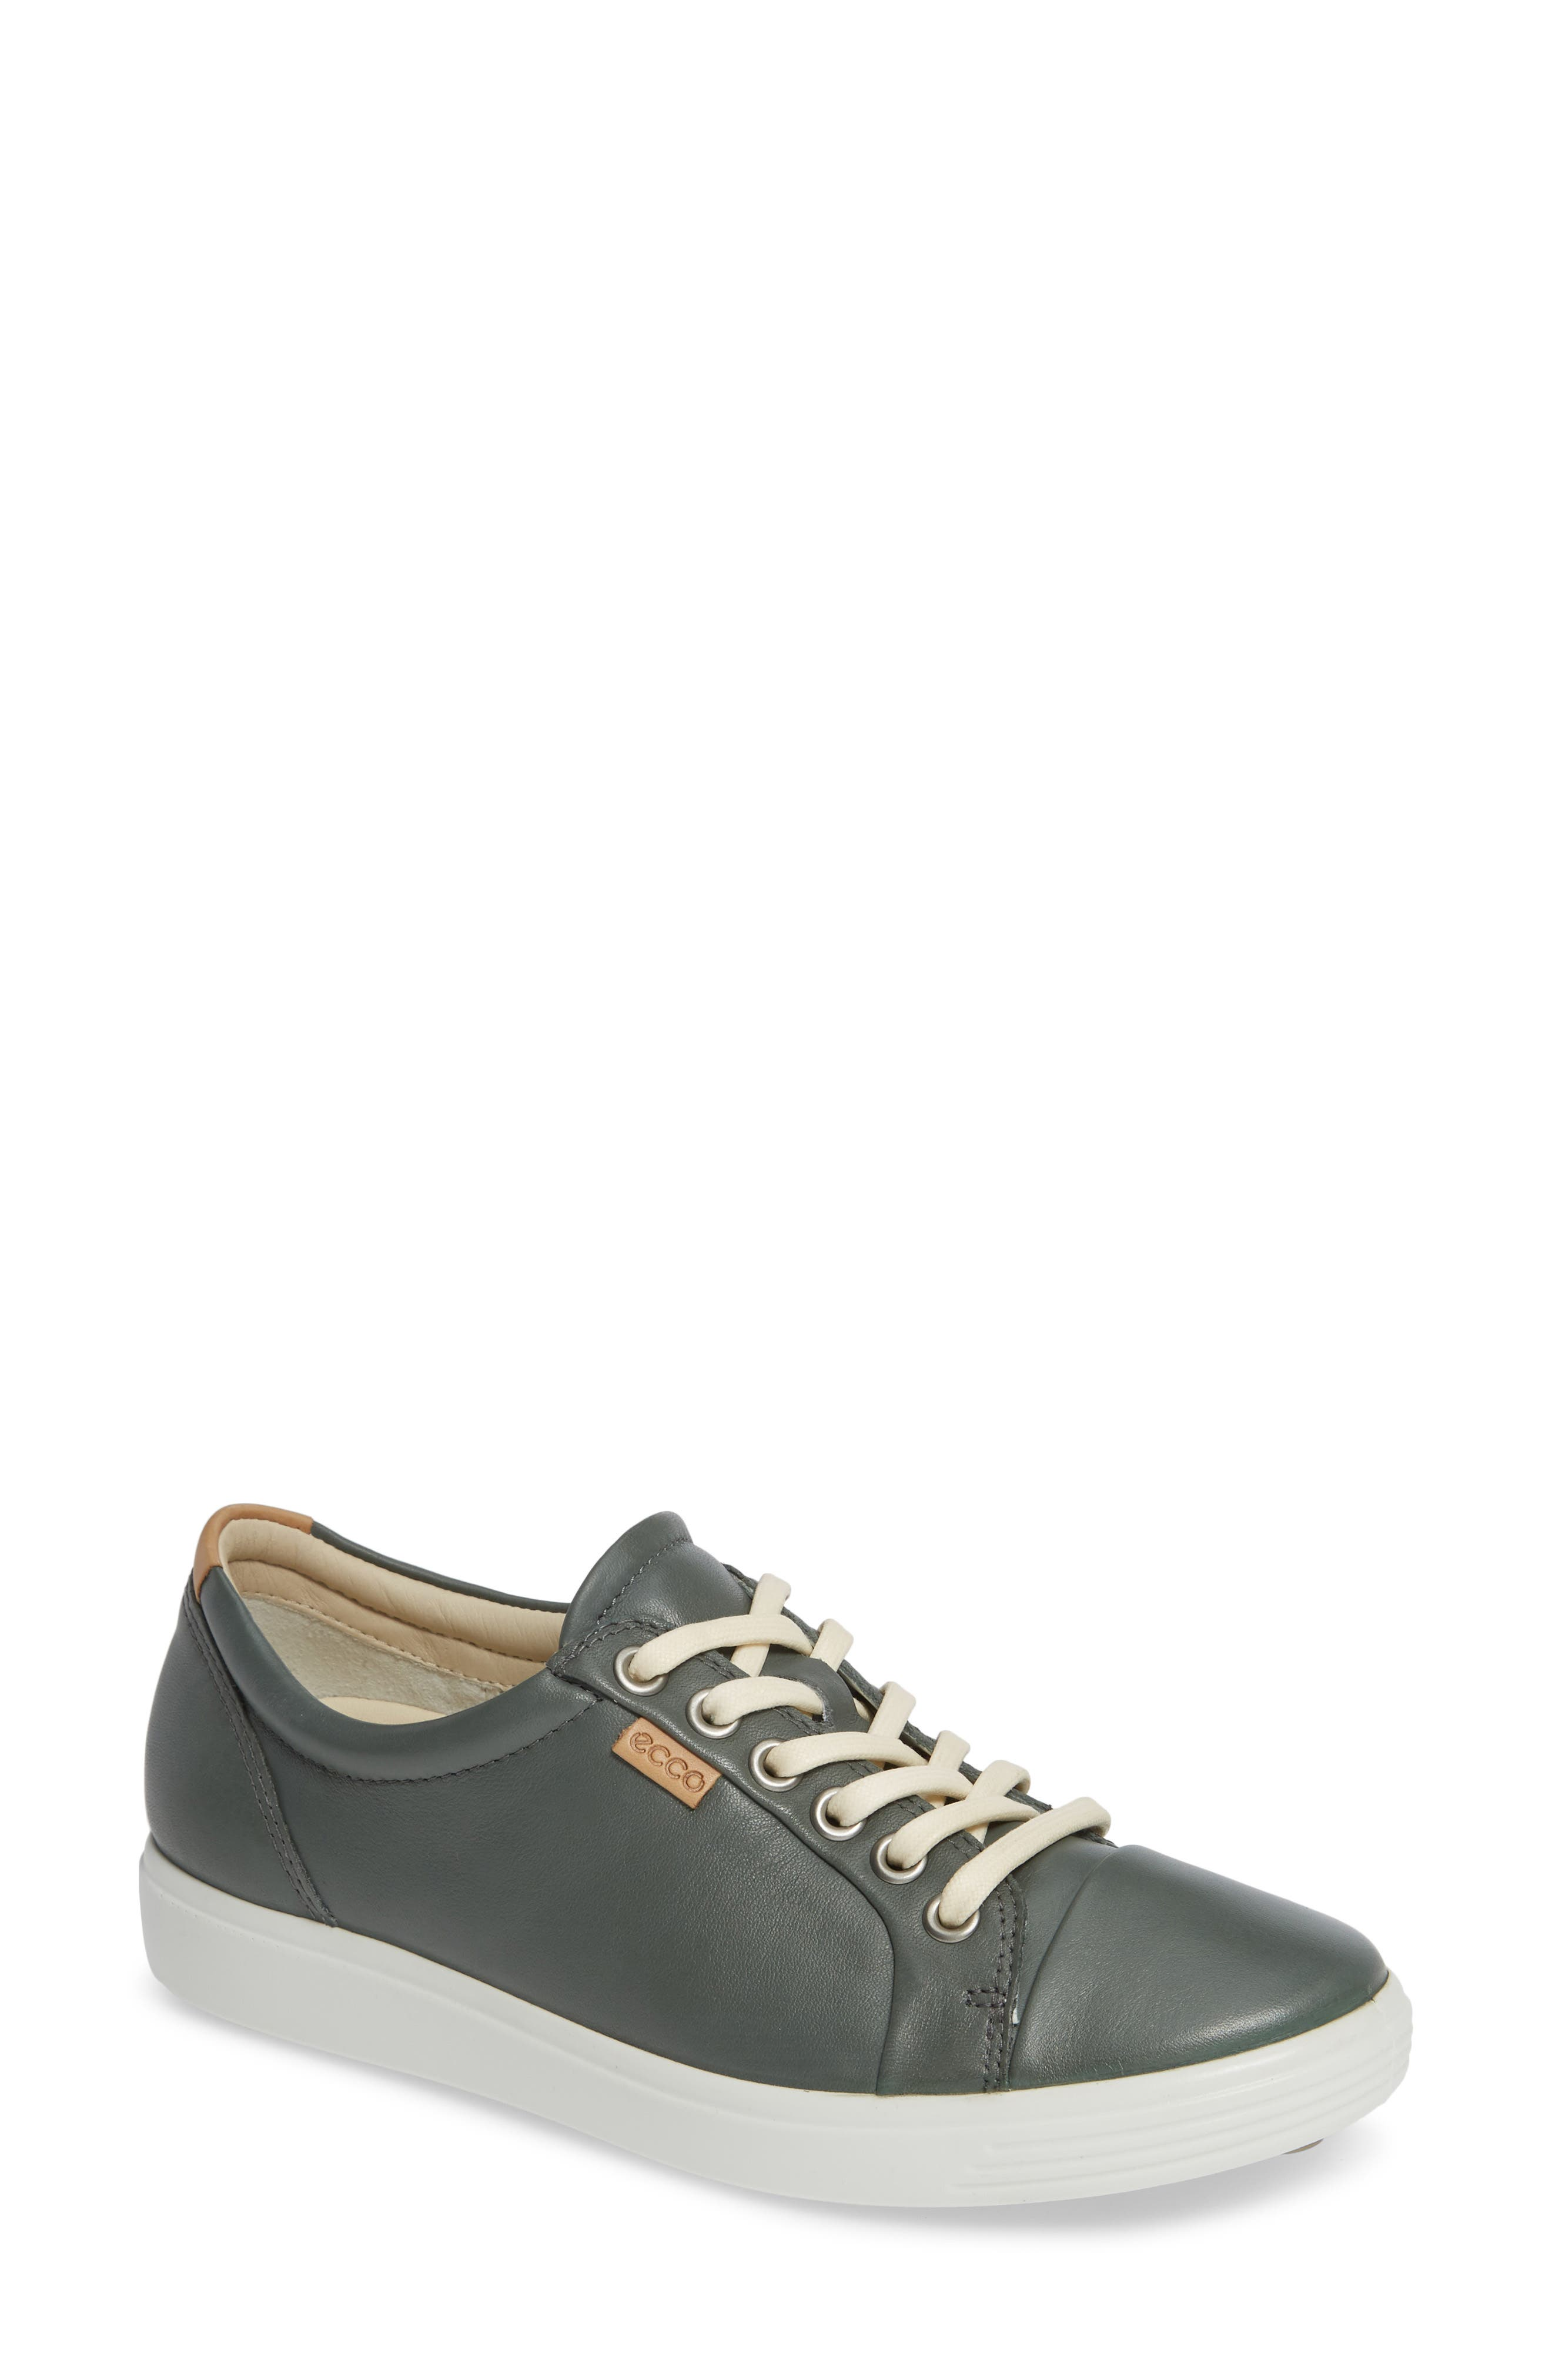 Soft 7 Sneaker,                         Main,                         color, MOON LEATHER